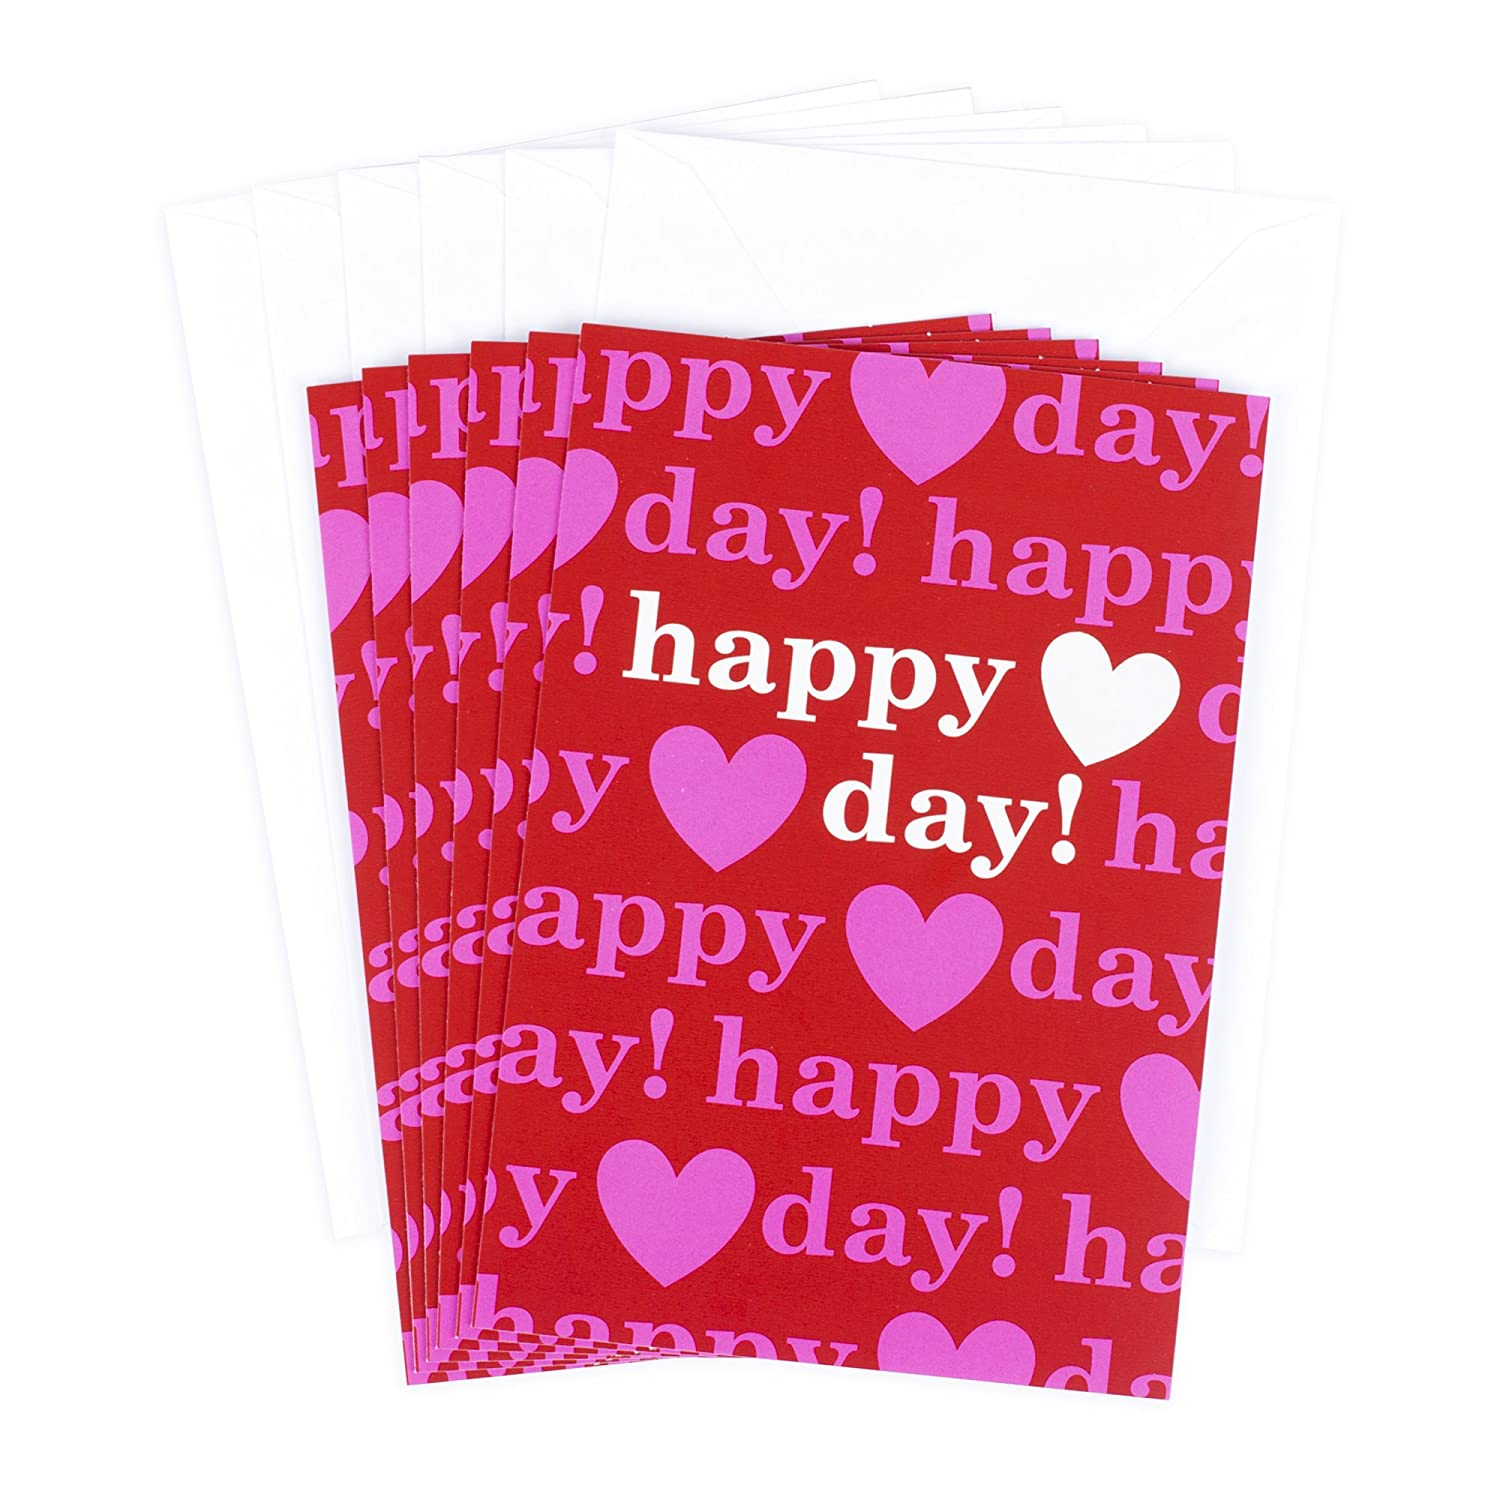 Amazon hallmark valentines day greeting cards assortment 6 amazon hallmark valentines day greeting cards assortment 6 cards and 6 envelopes happy day hearts pink and red office products kristyandbryce Choice Image